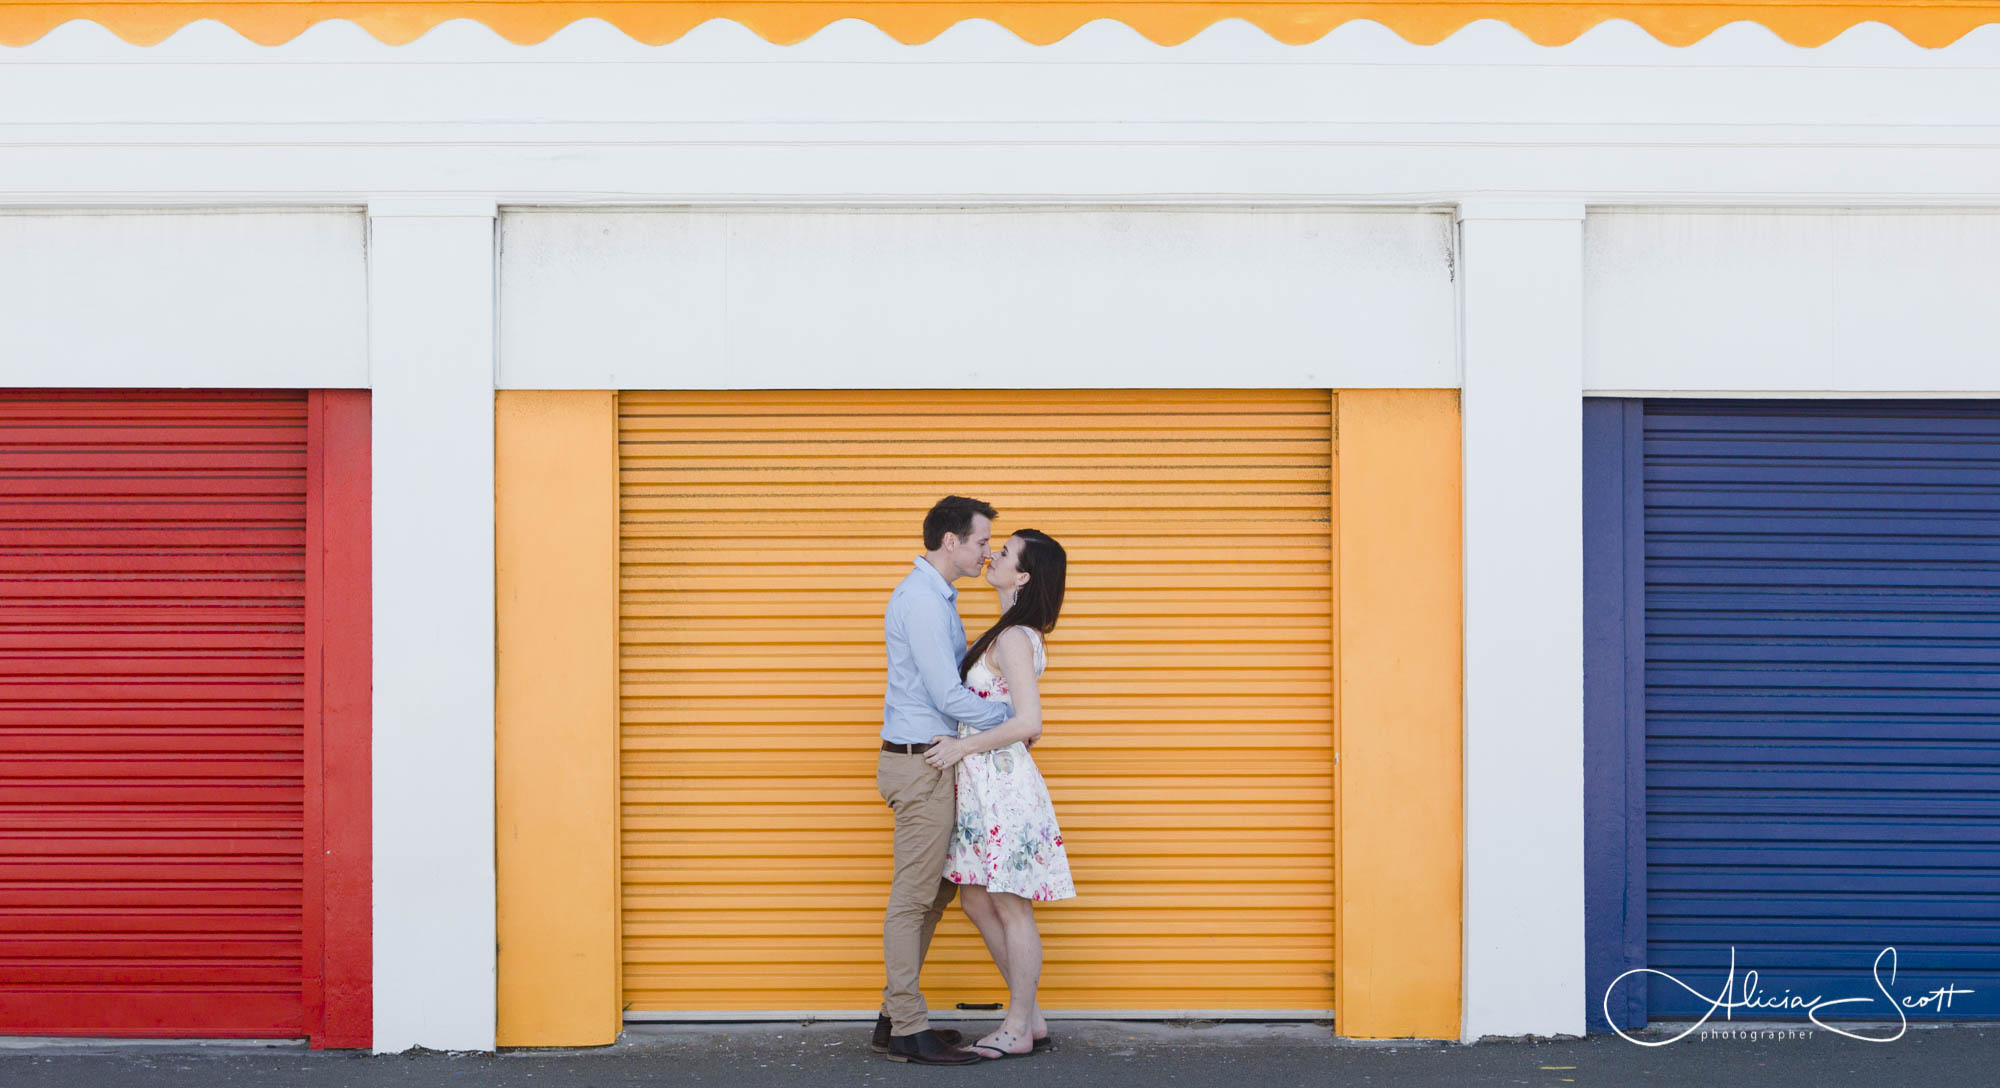 Images from a Lyall Bay engagement session taken by Alicia Scott Wellington Photographer